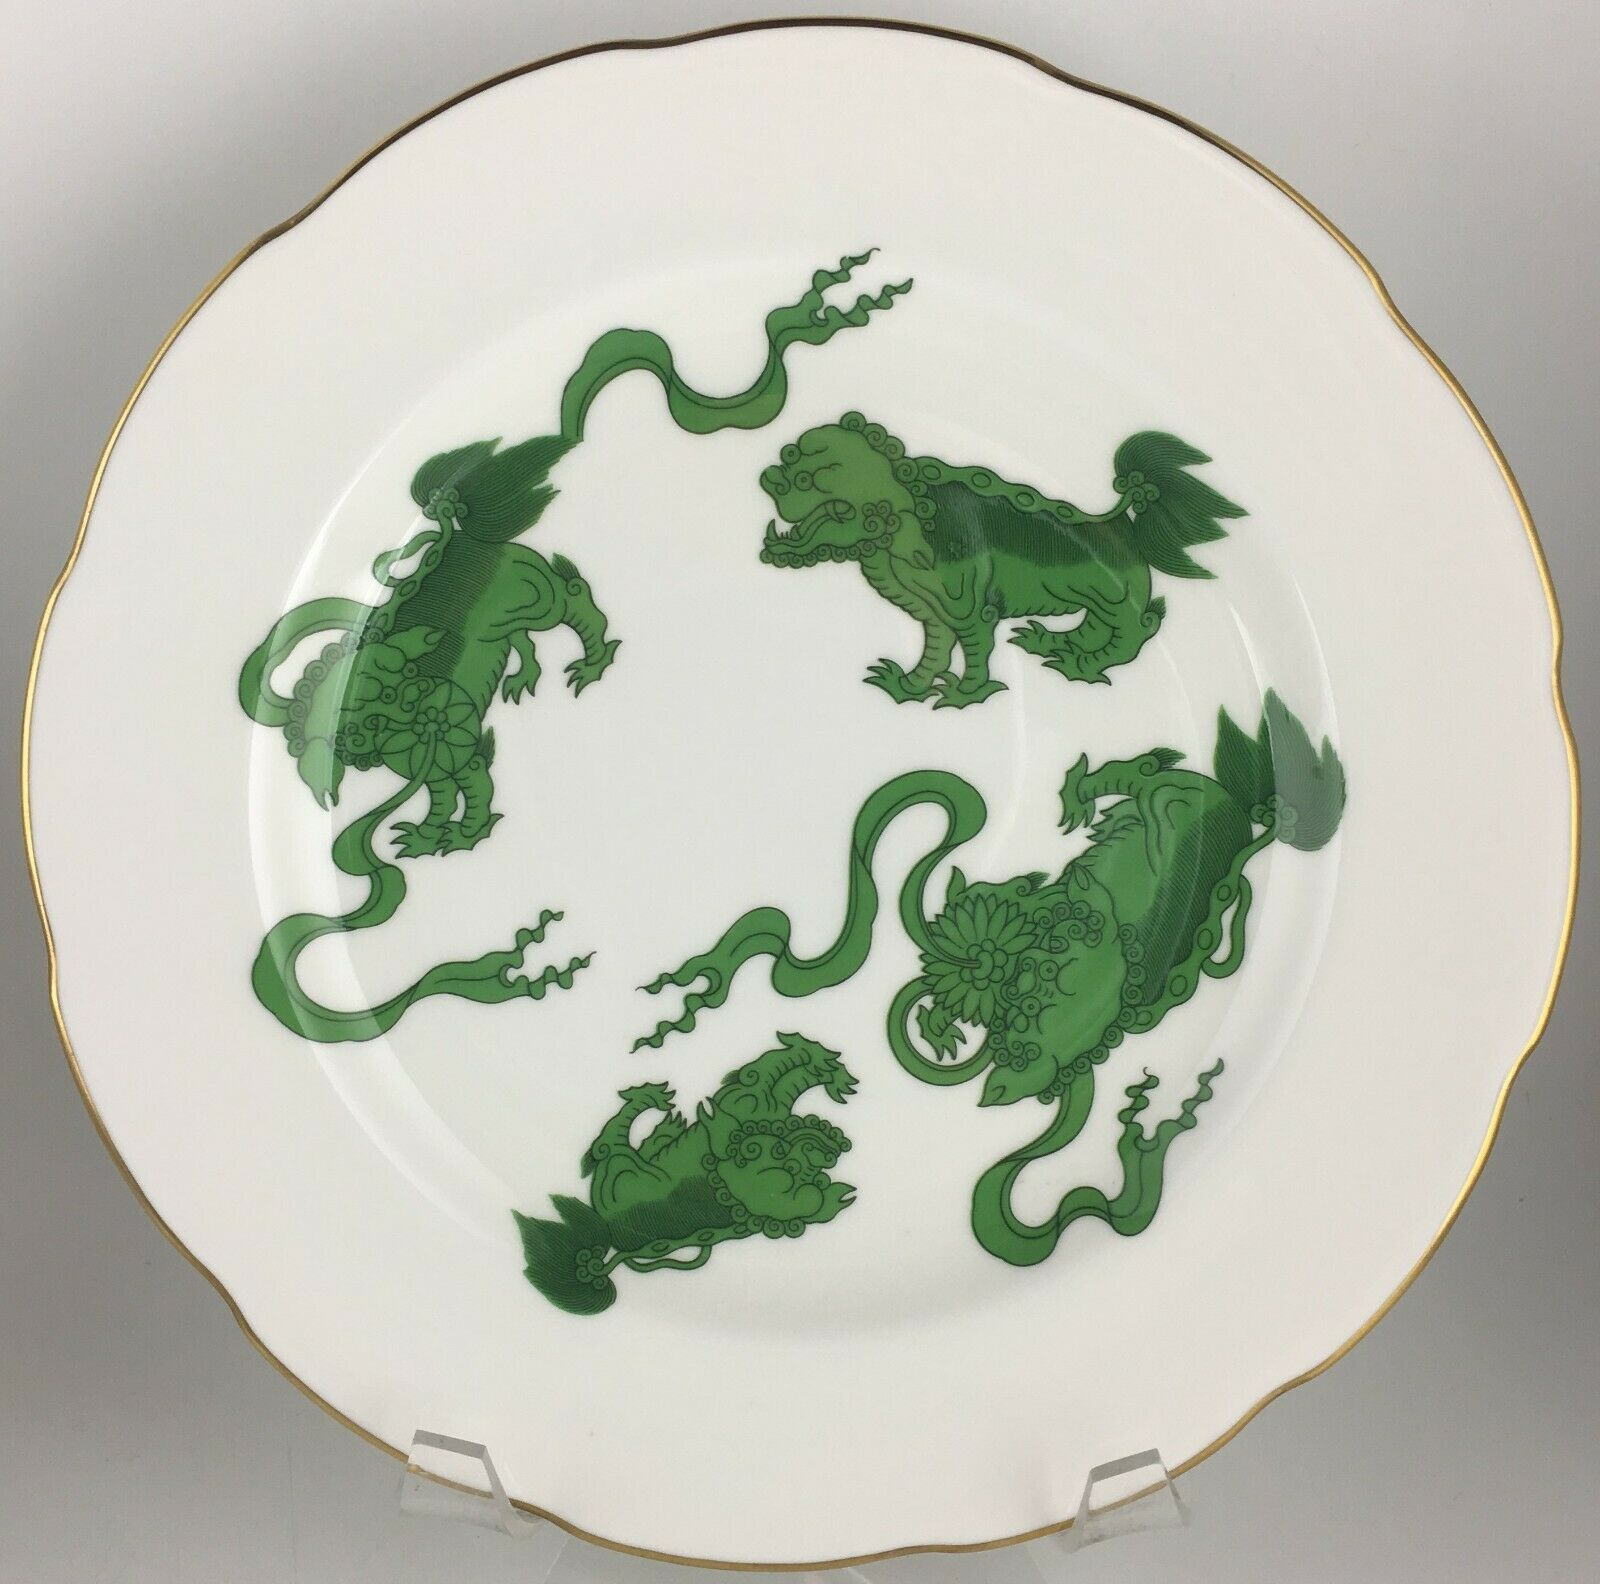 Wedgwood Chinese Tigers Luncheon plate - $85.00